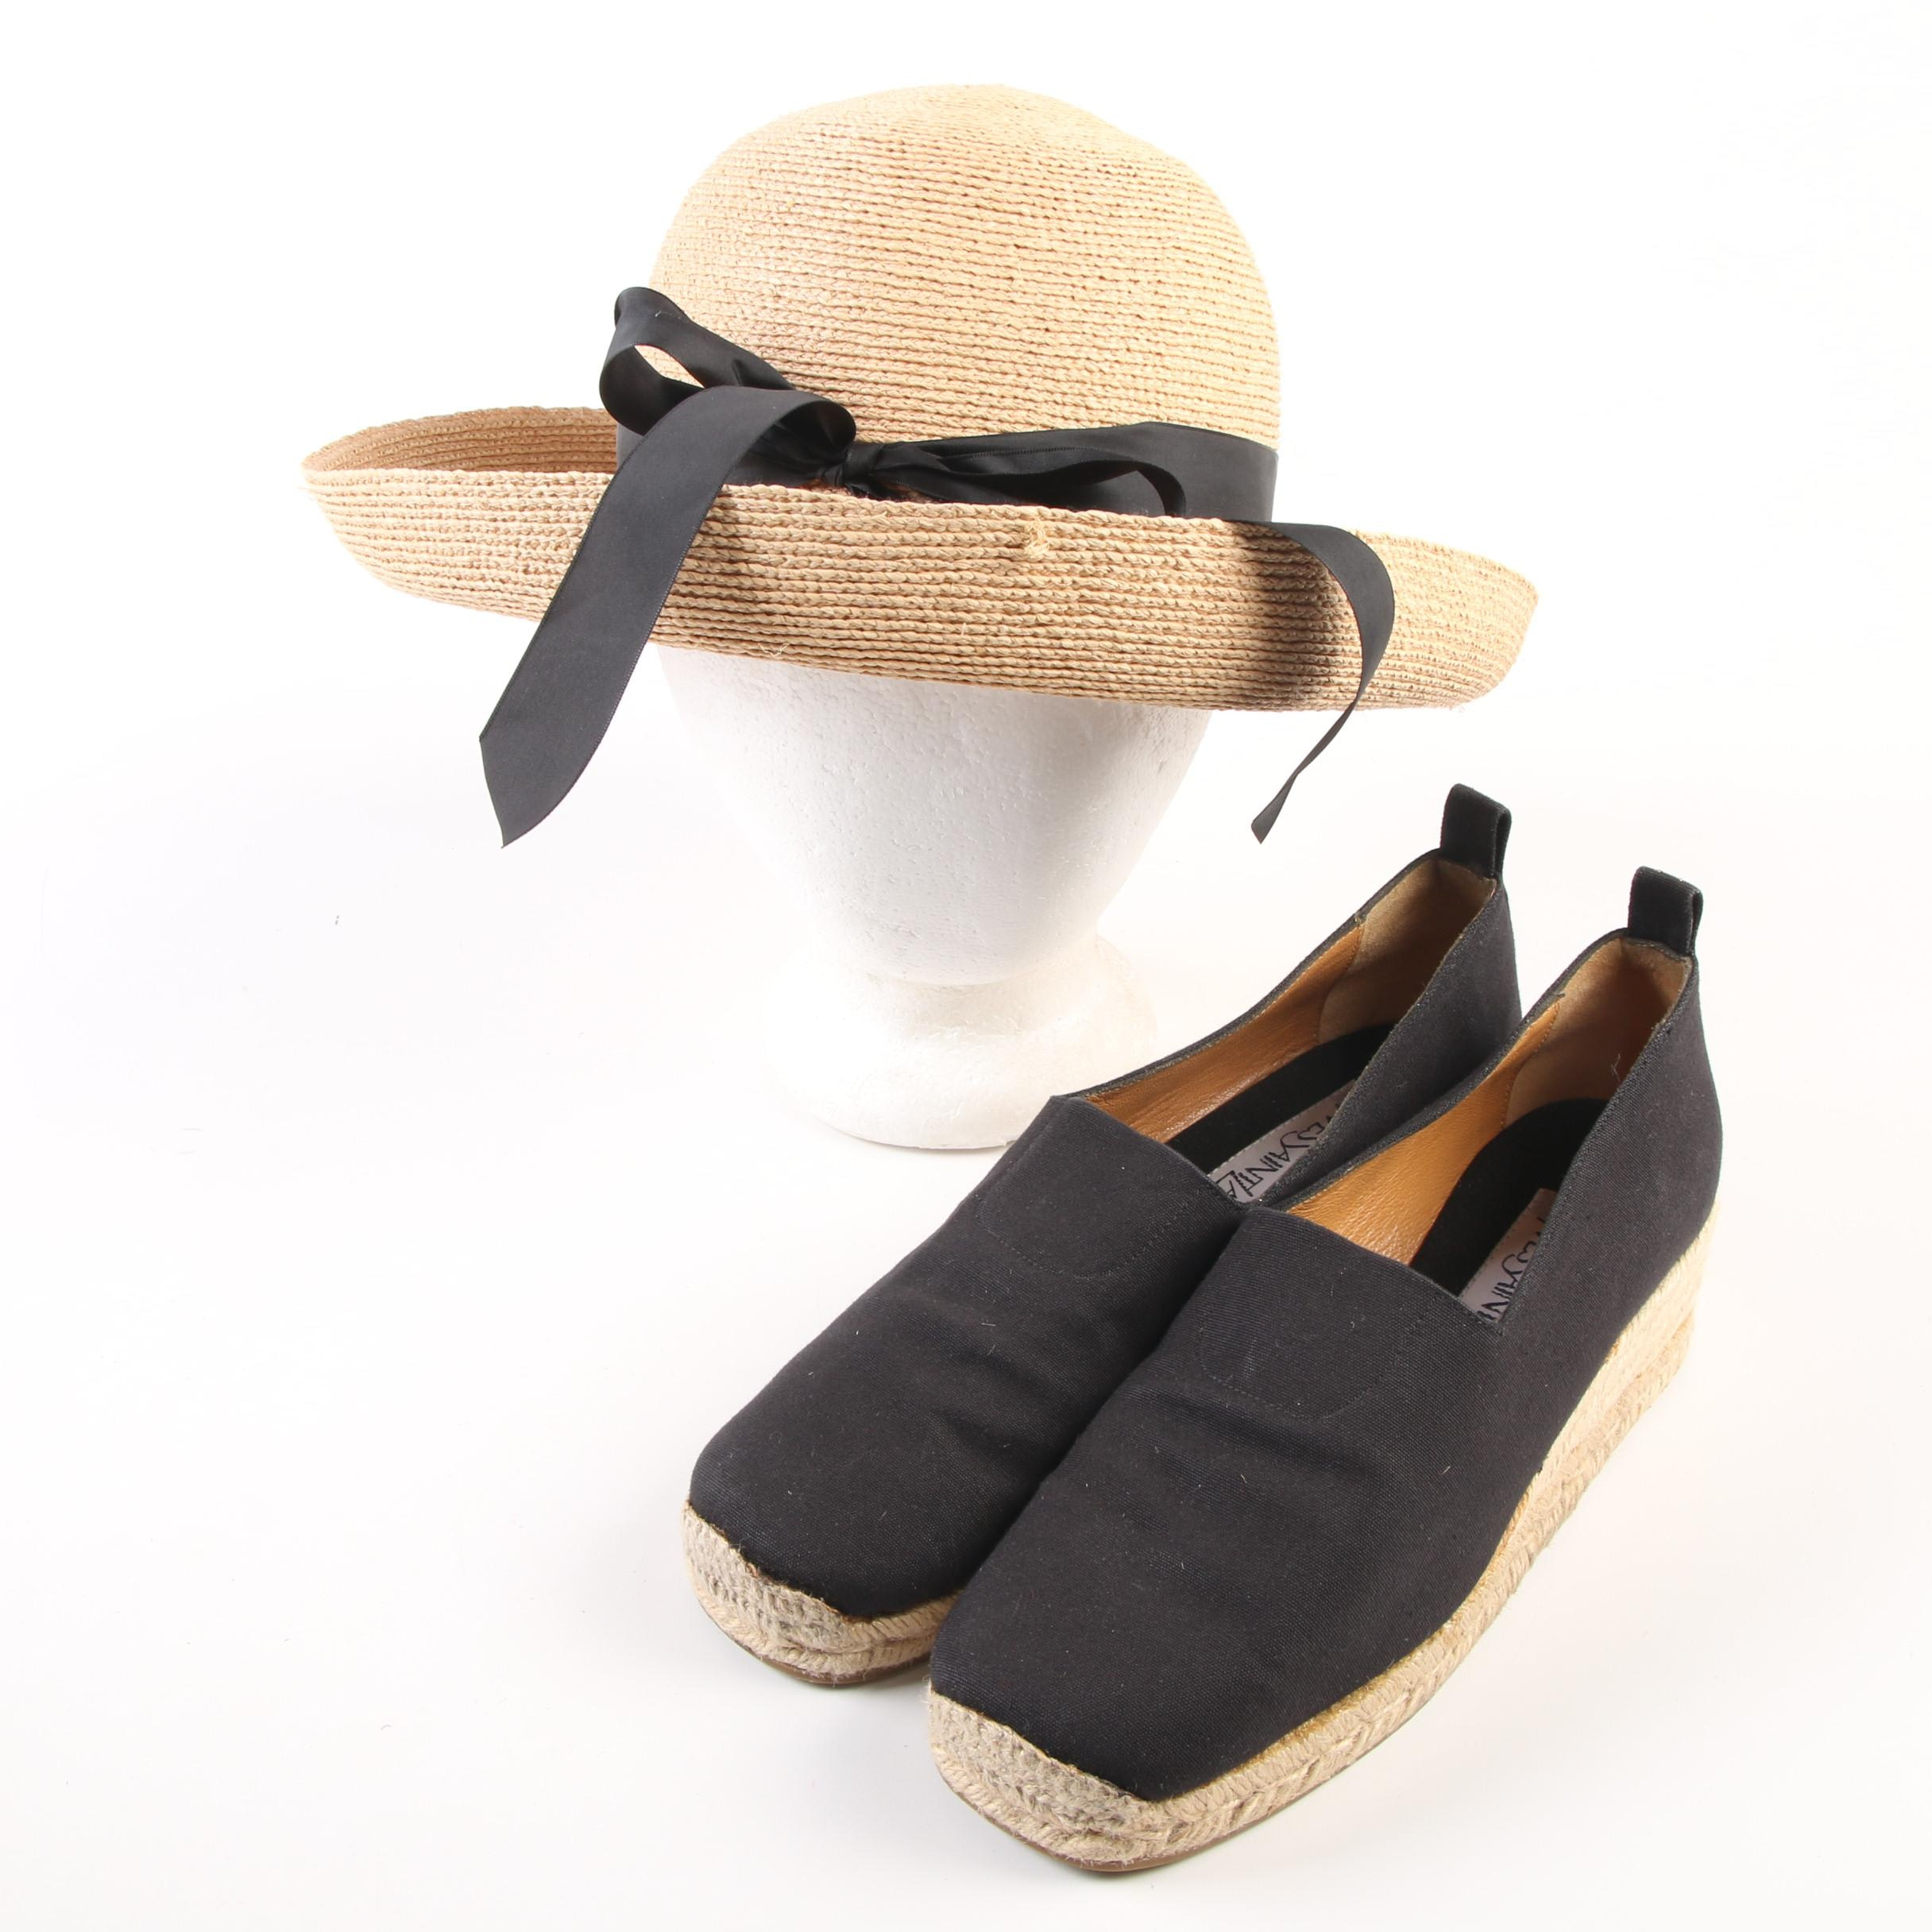 Yves Saint Laurent Espadrille Wedges and Annabel Ingall of Australia Straw Hat